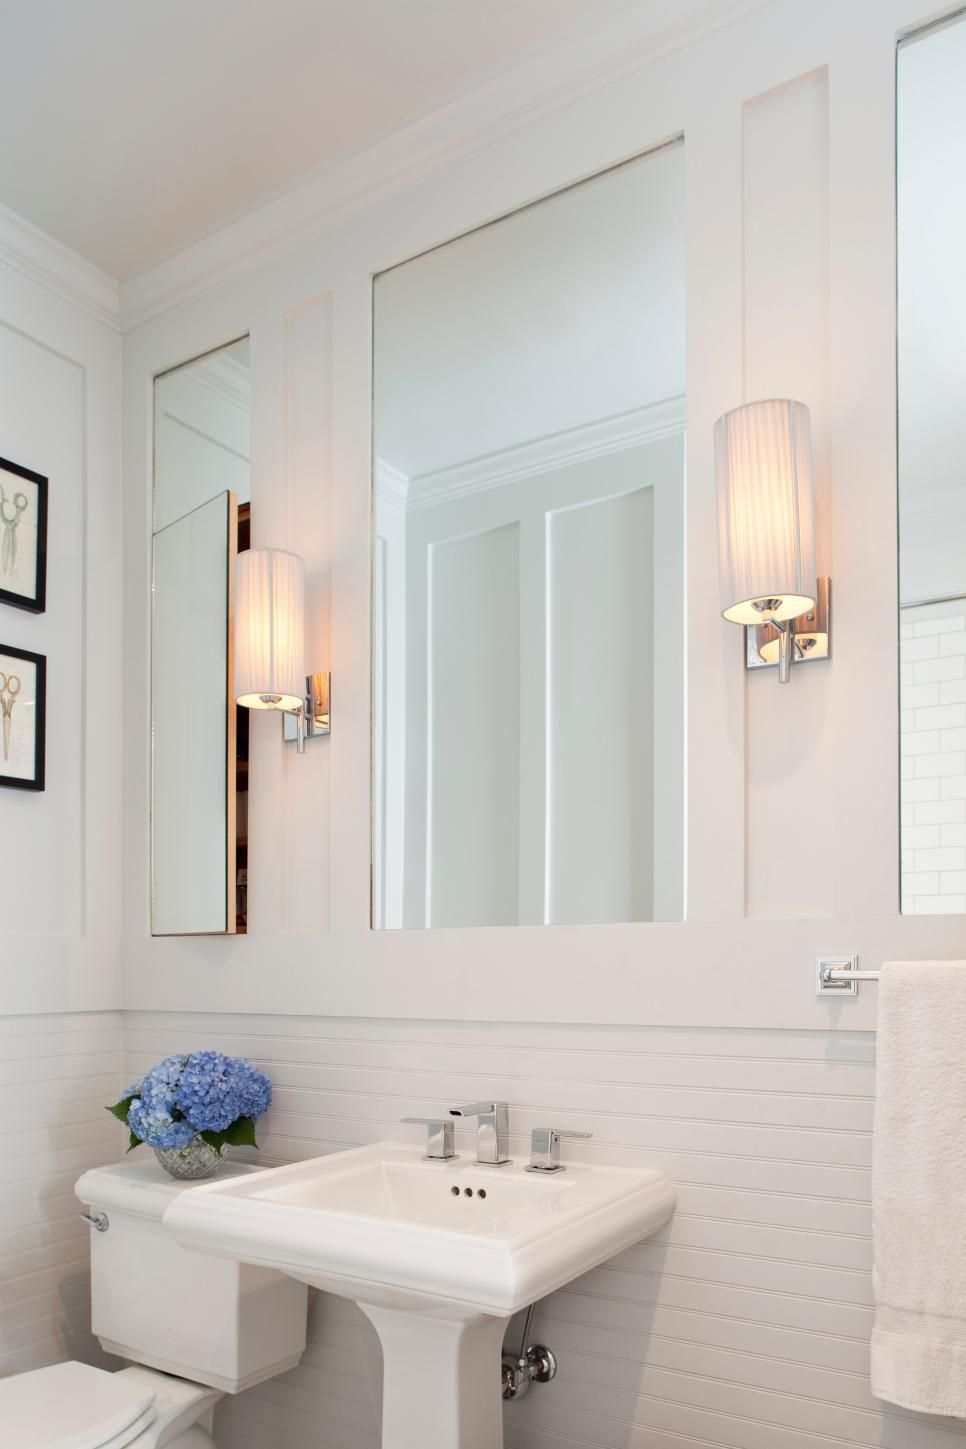 jazz up your bathroom with these affordable tips and on 81 Bathroom Design And Tips For Designing Your Own Bathroom id=21310